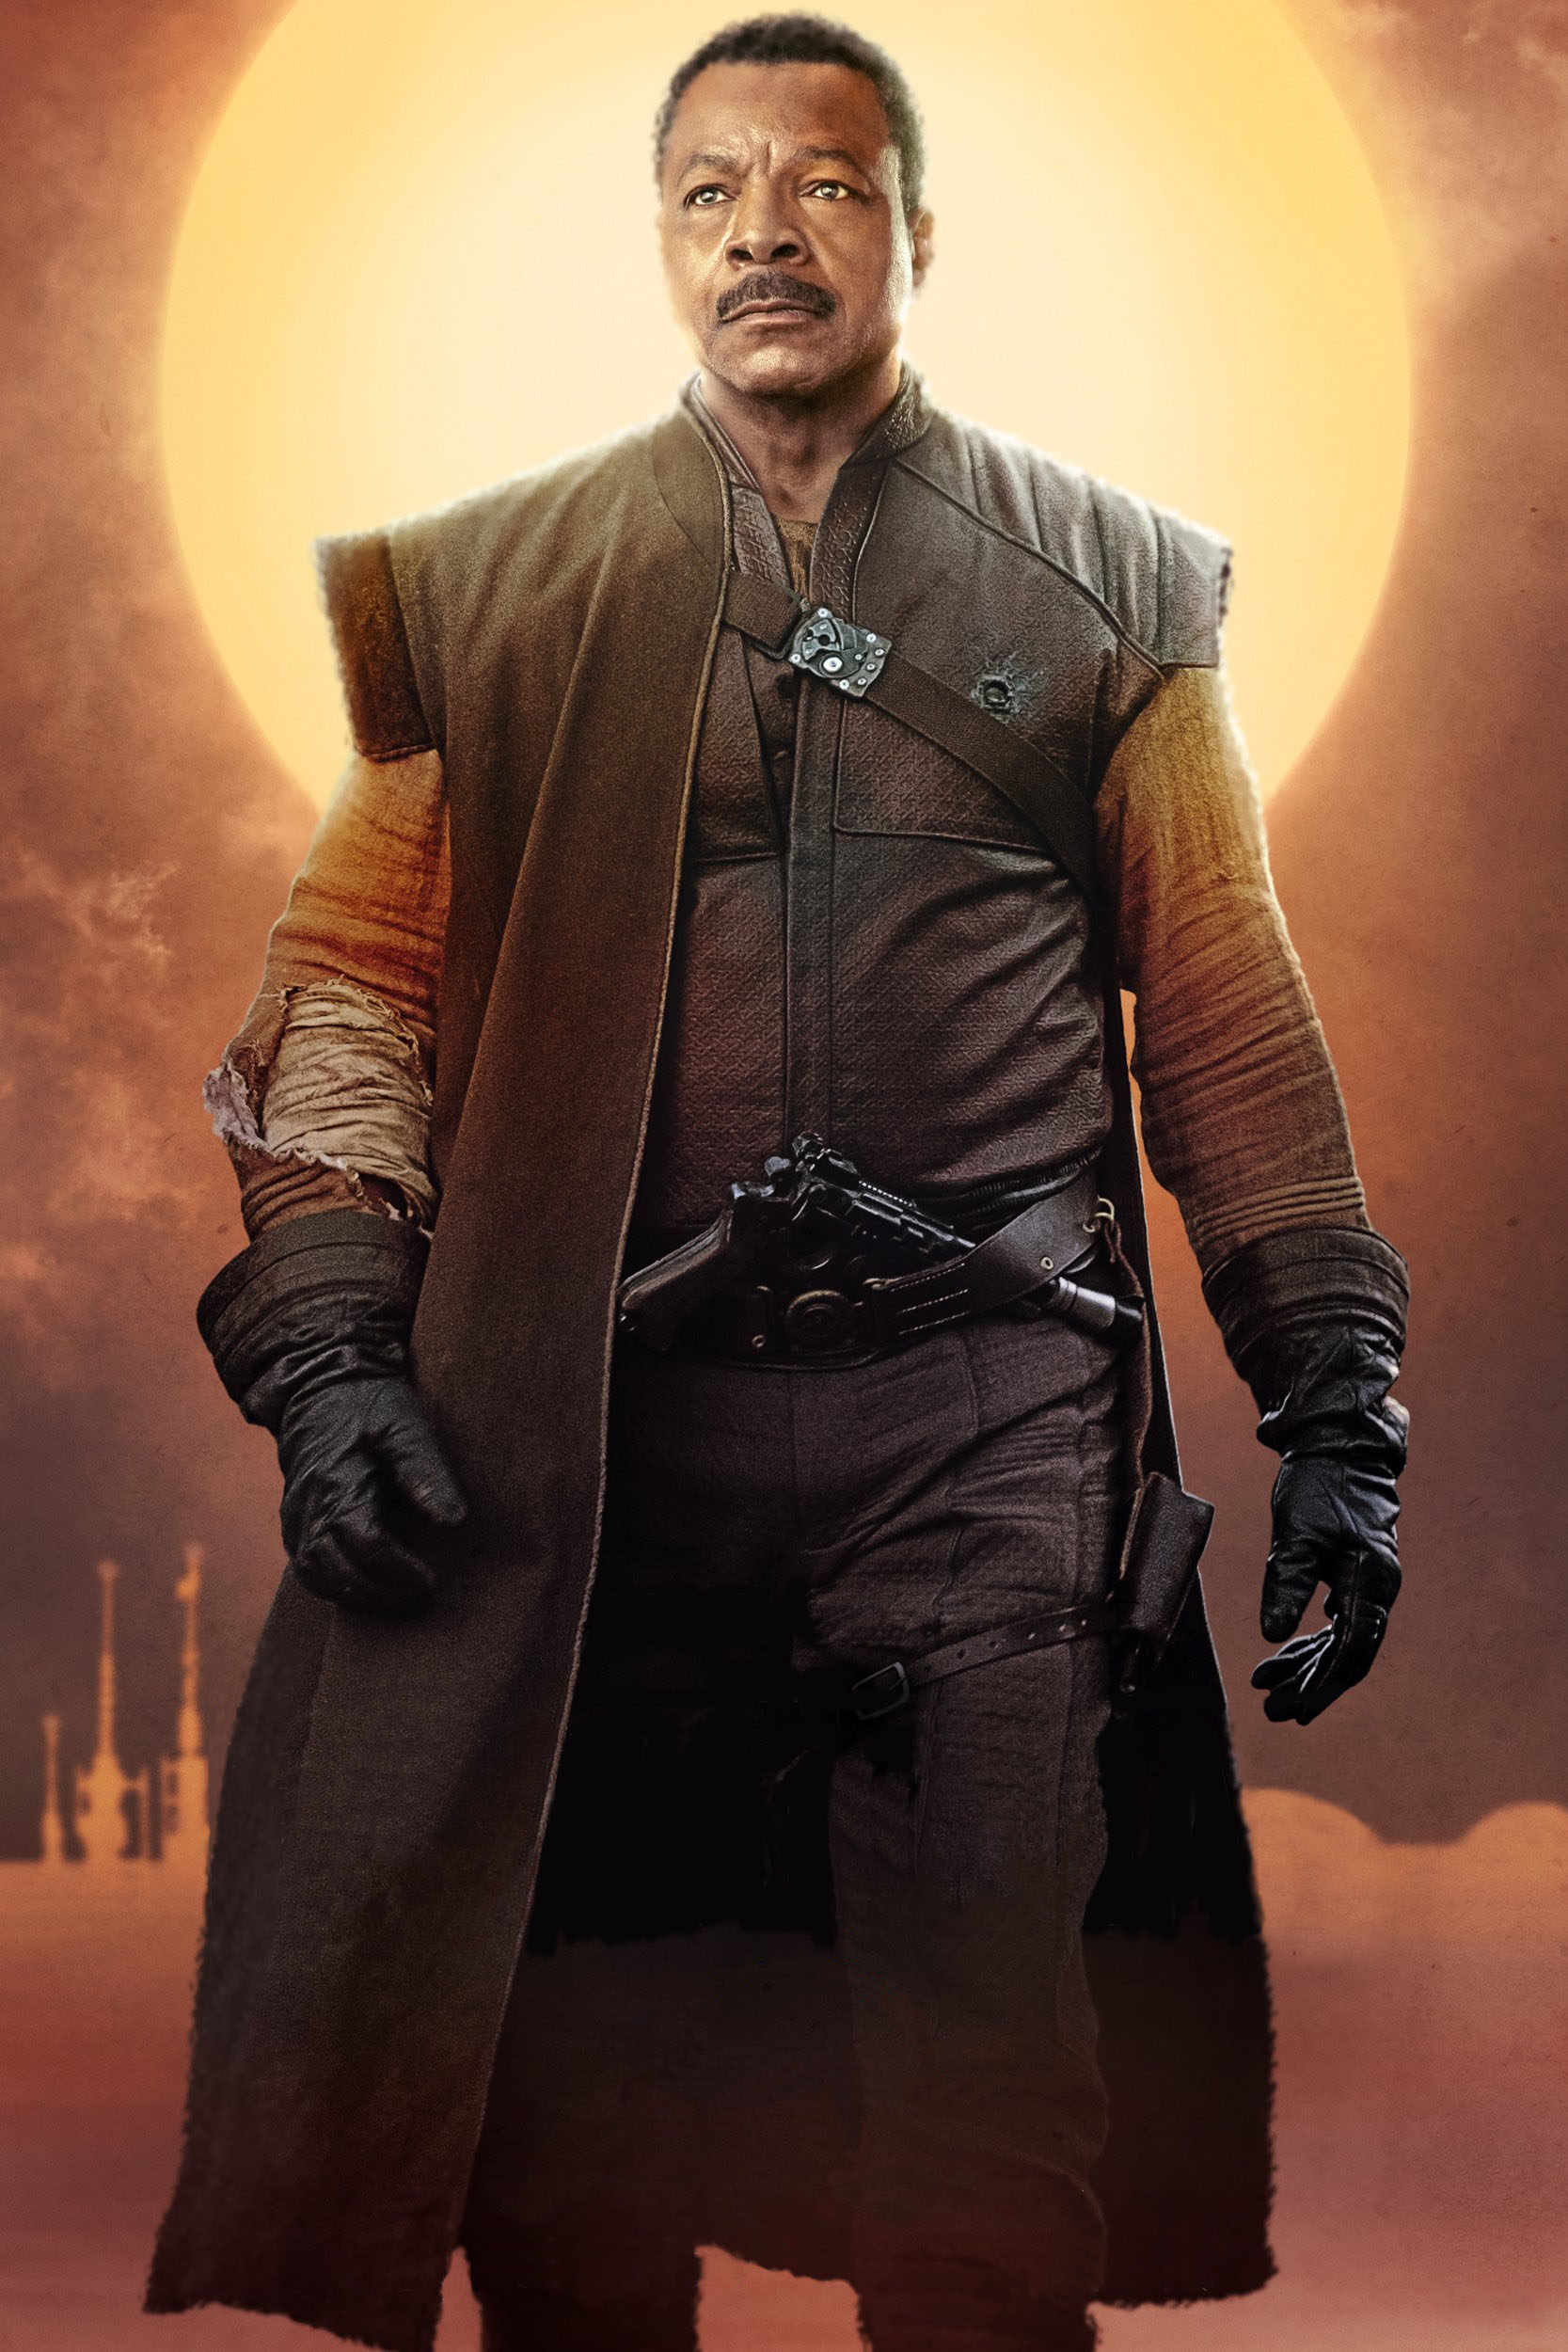 Star Wars The Mandalorian E28093 Textless Character Posters